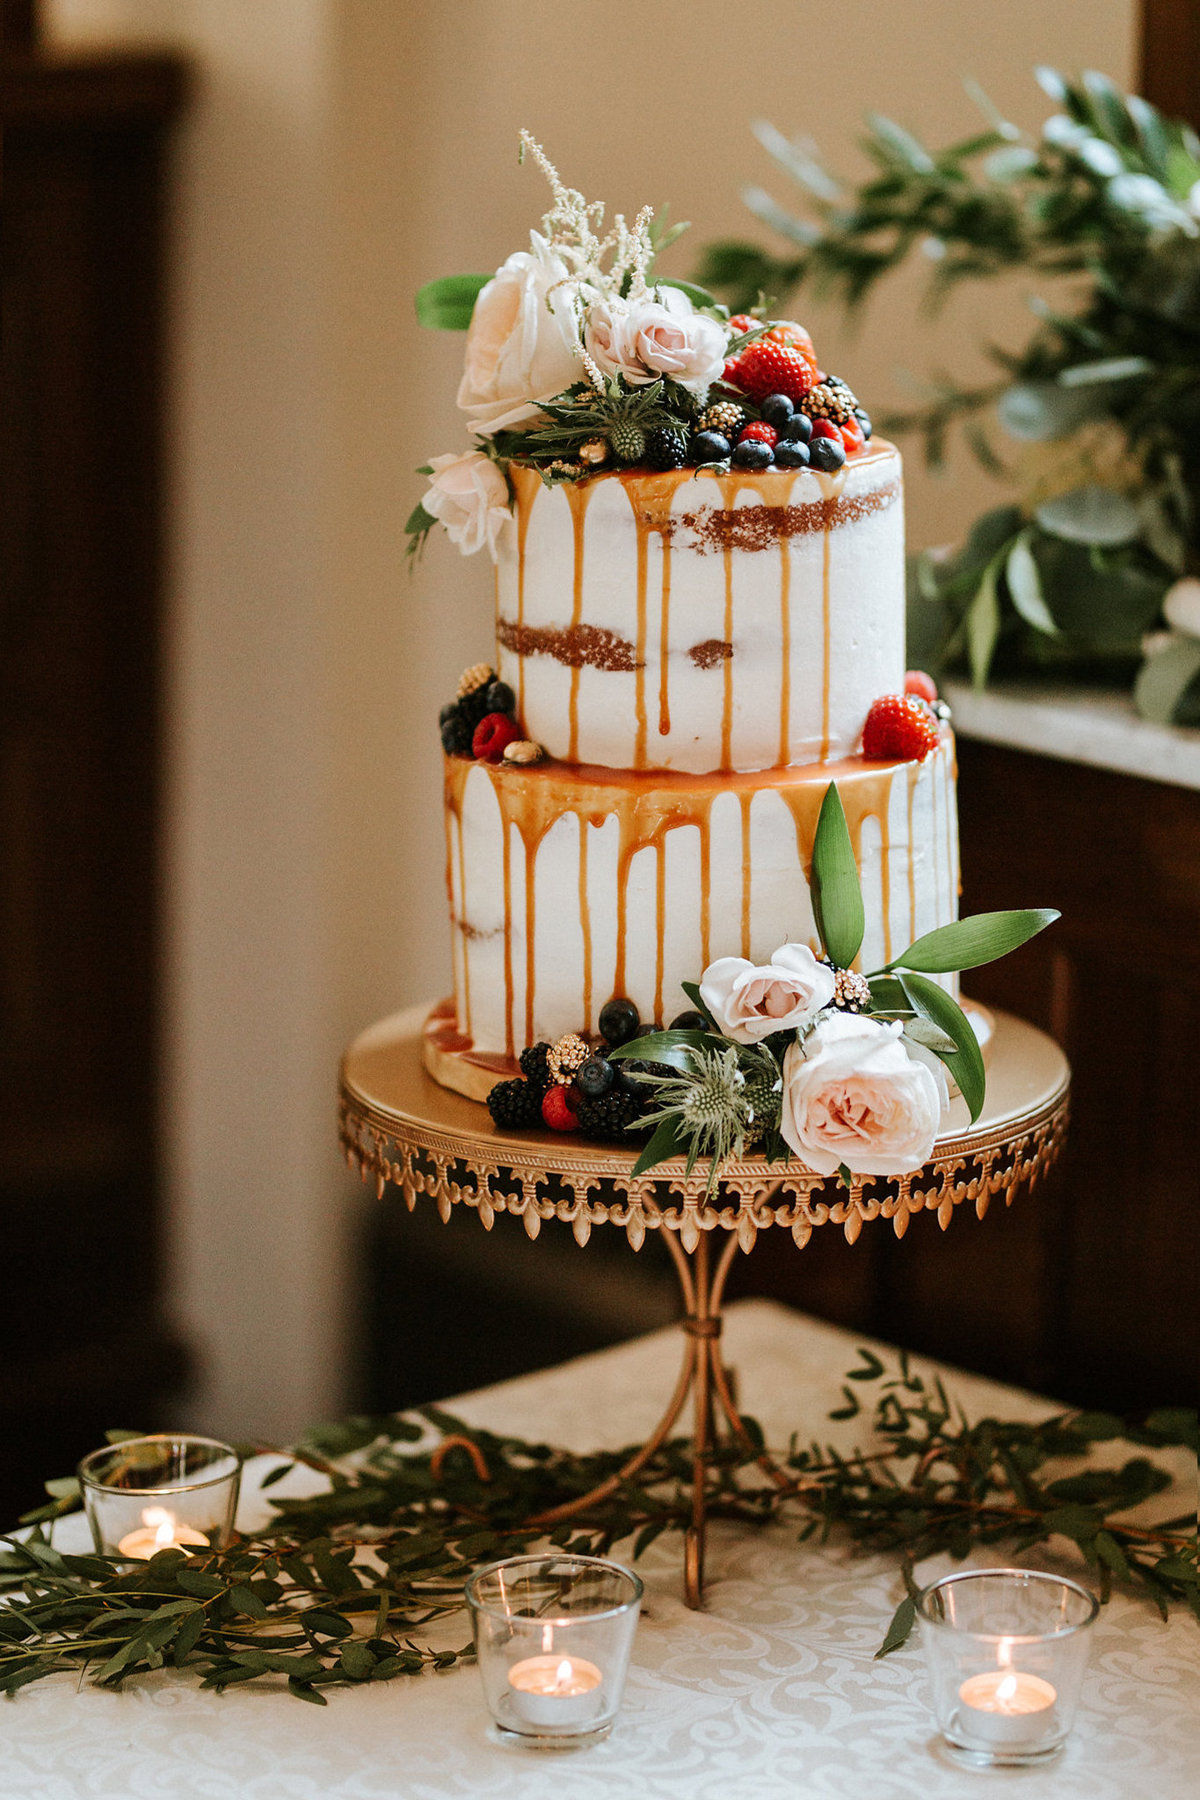 Whippt Wedding Cake - Semi-Naked design with drip